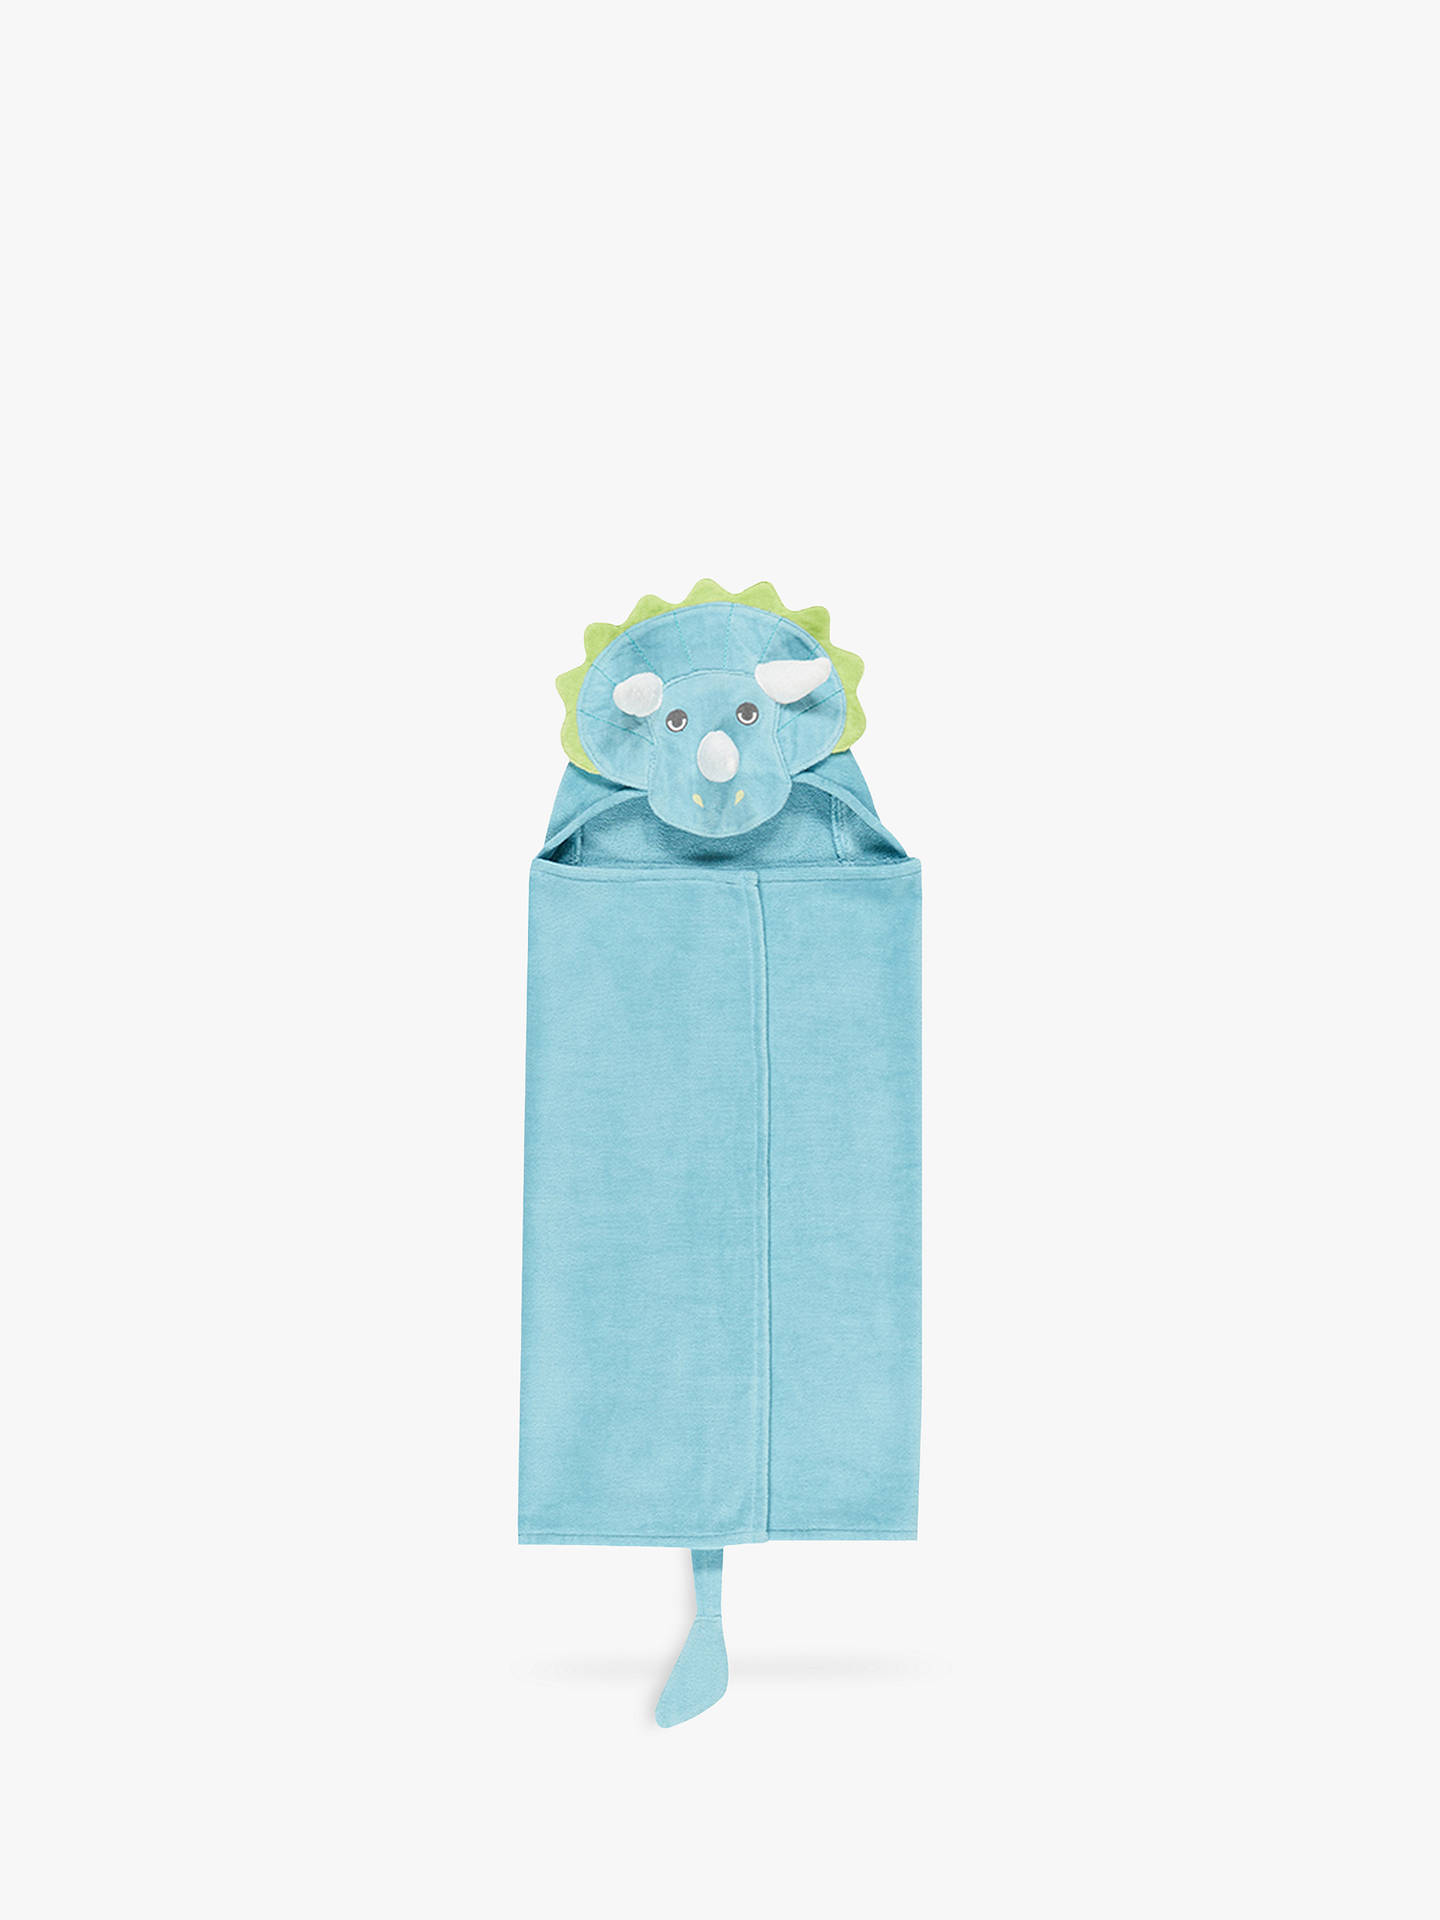 Buy Pottery Barn Kids Dinosaur Critter Hooded Bath Towel, Blue Online at johnlewis.com